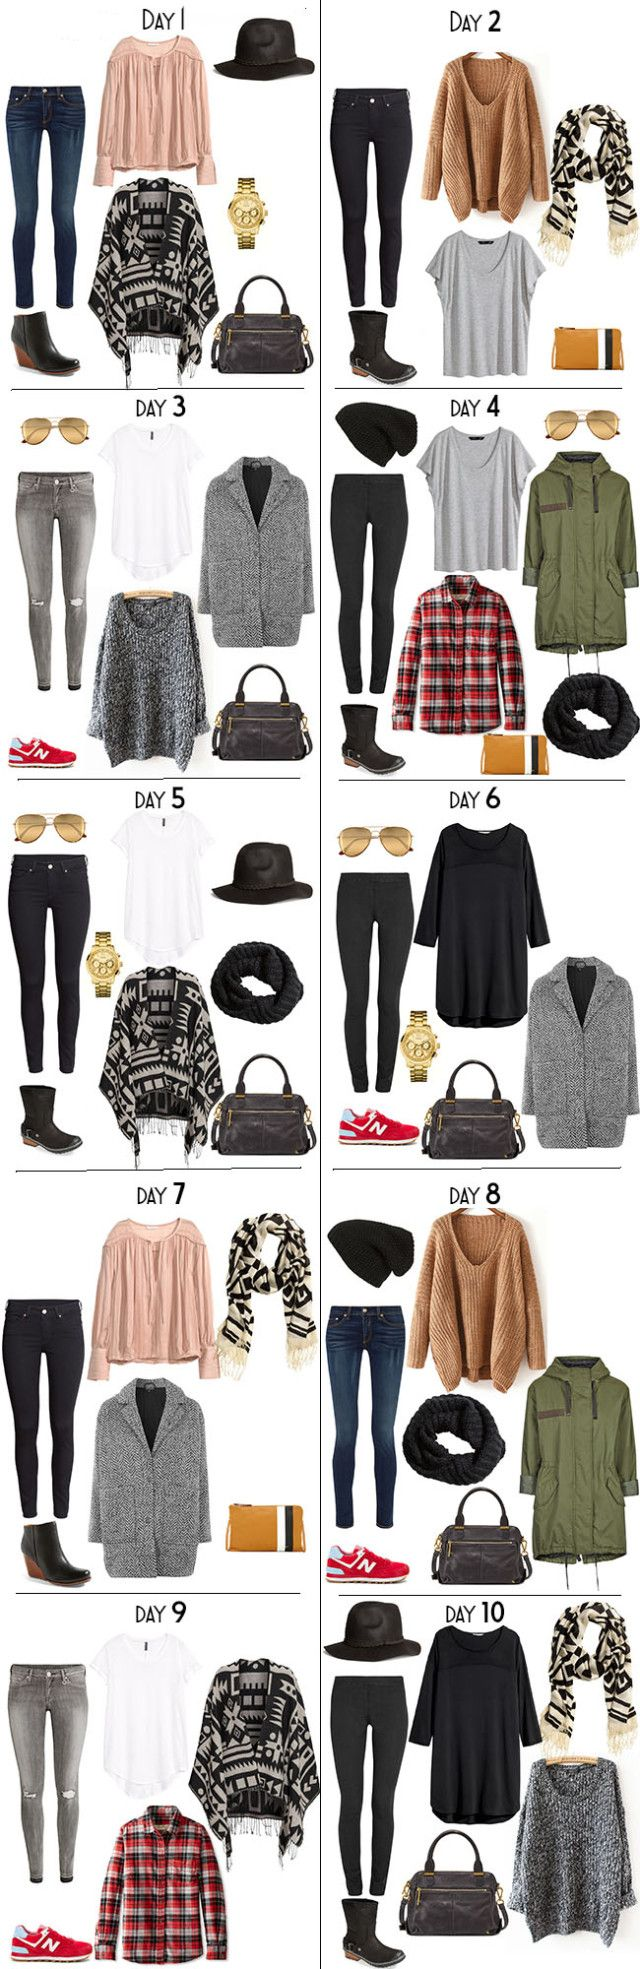 Outfit options for the packing light, Italy inspiration!